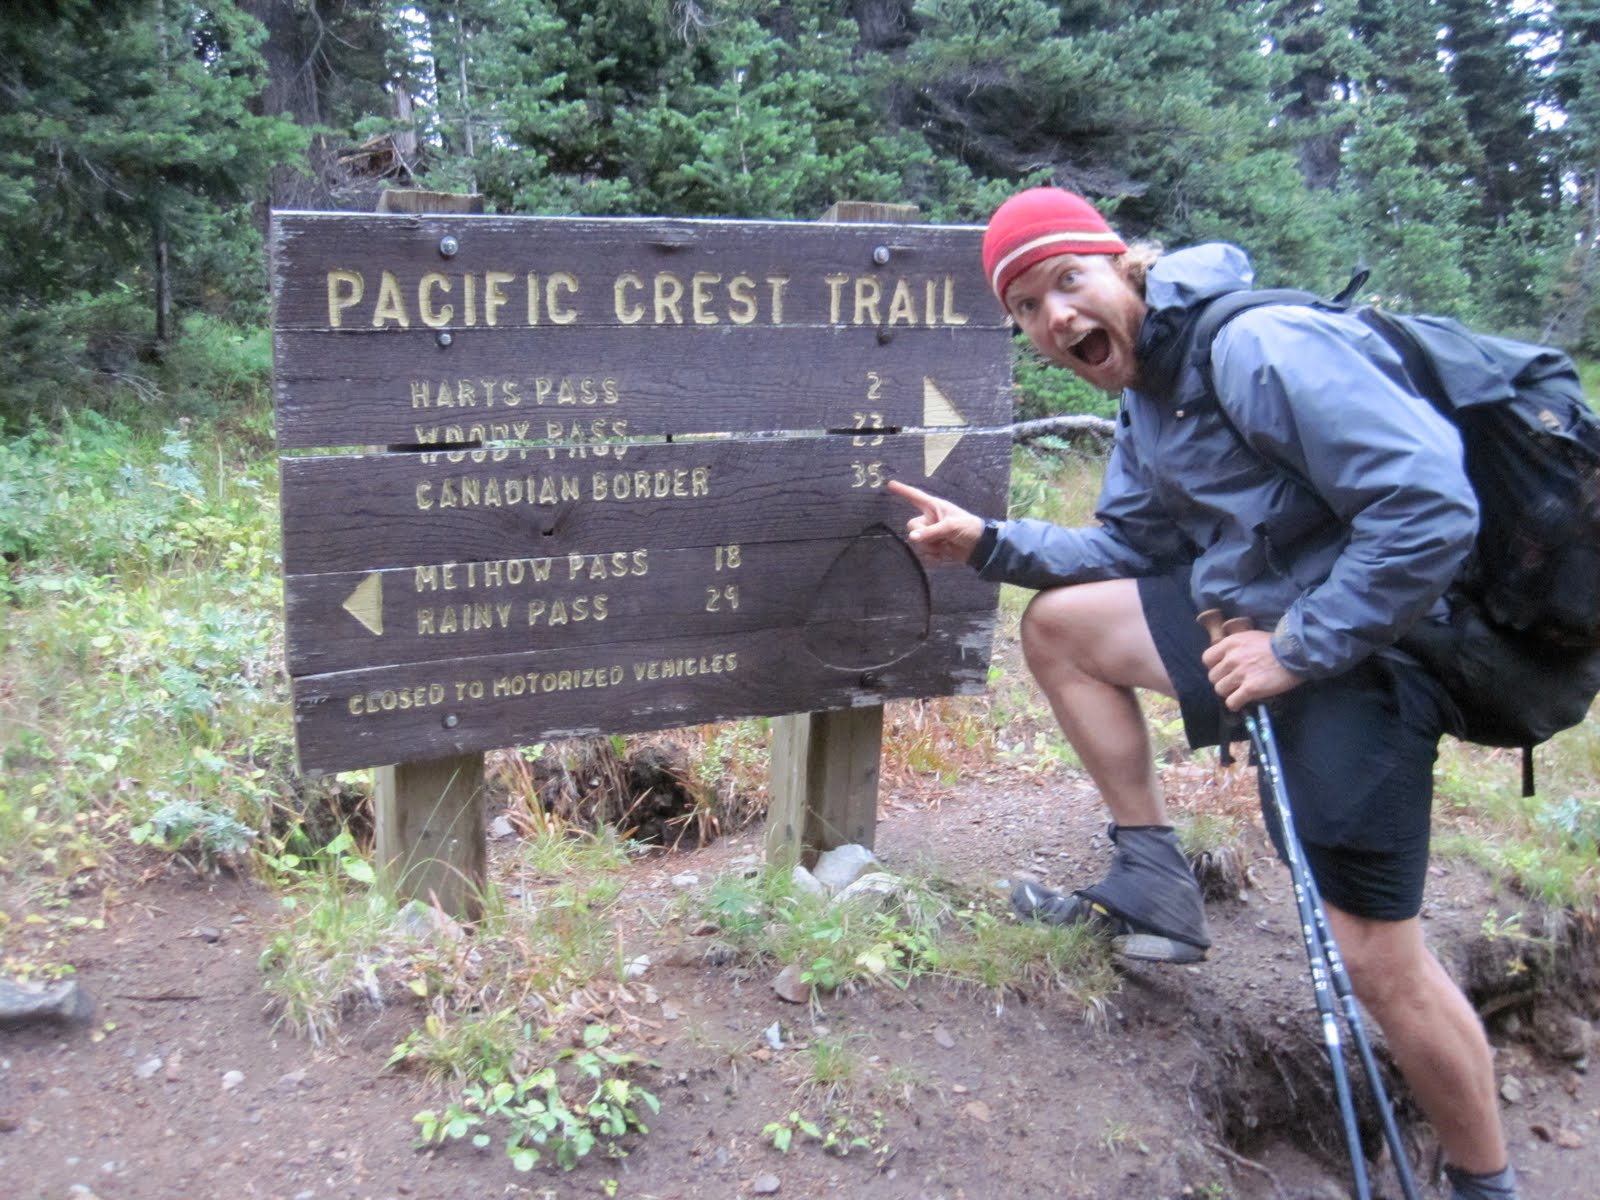 Mikes Hike Pacific Crest Trail 2010